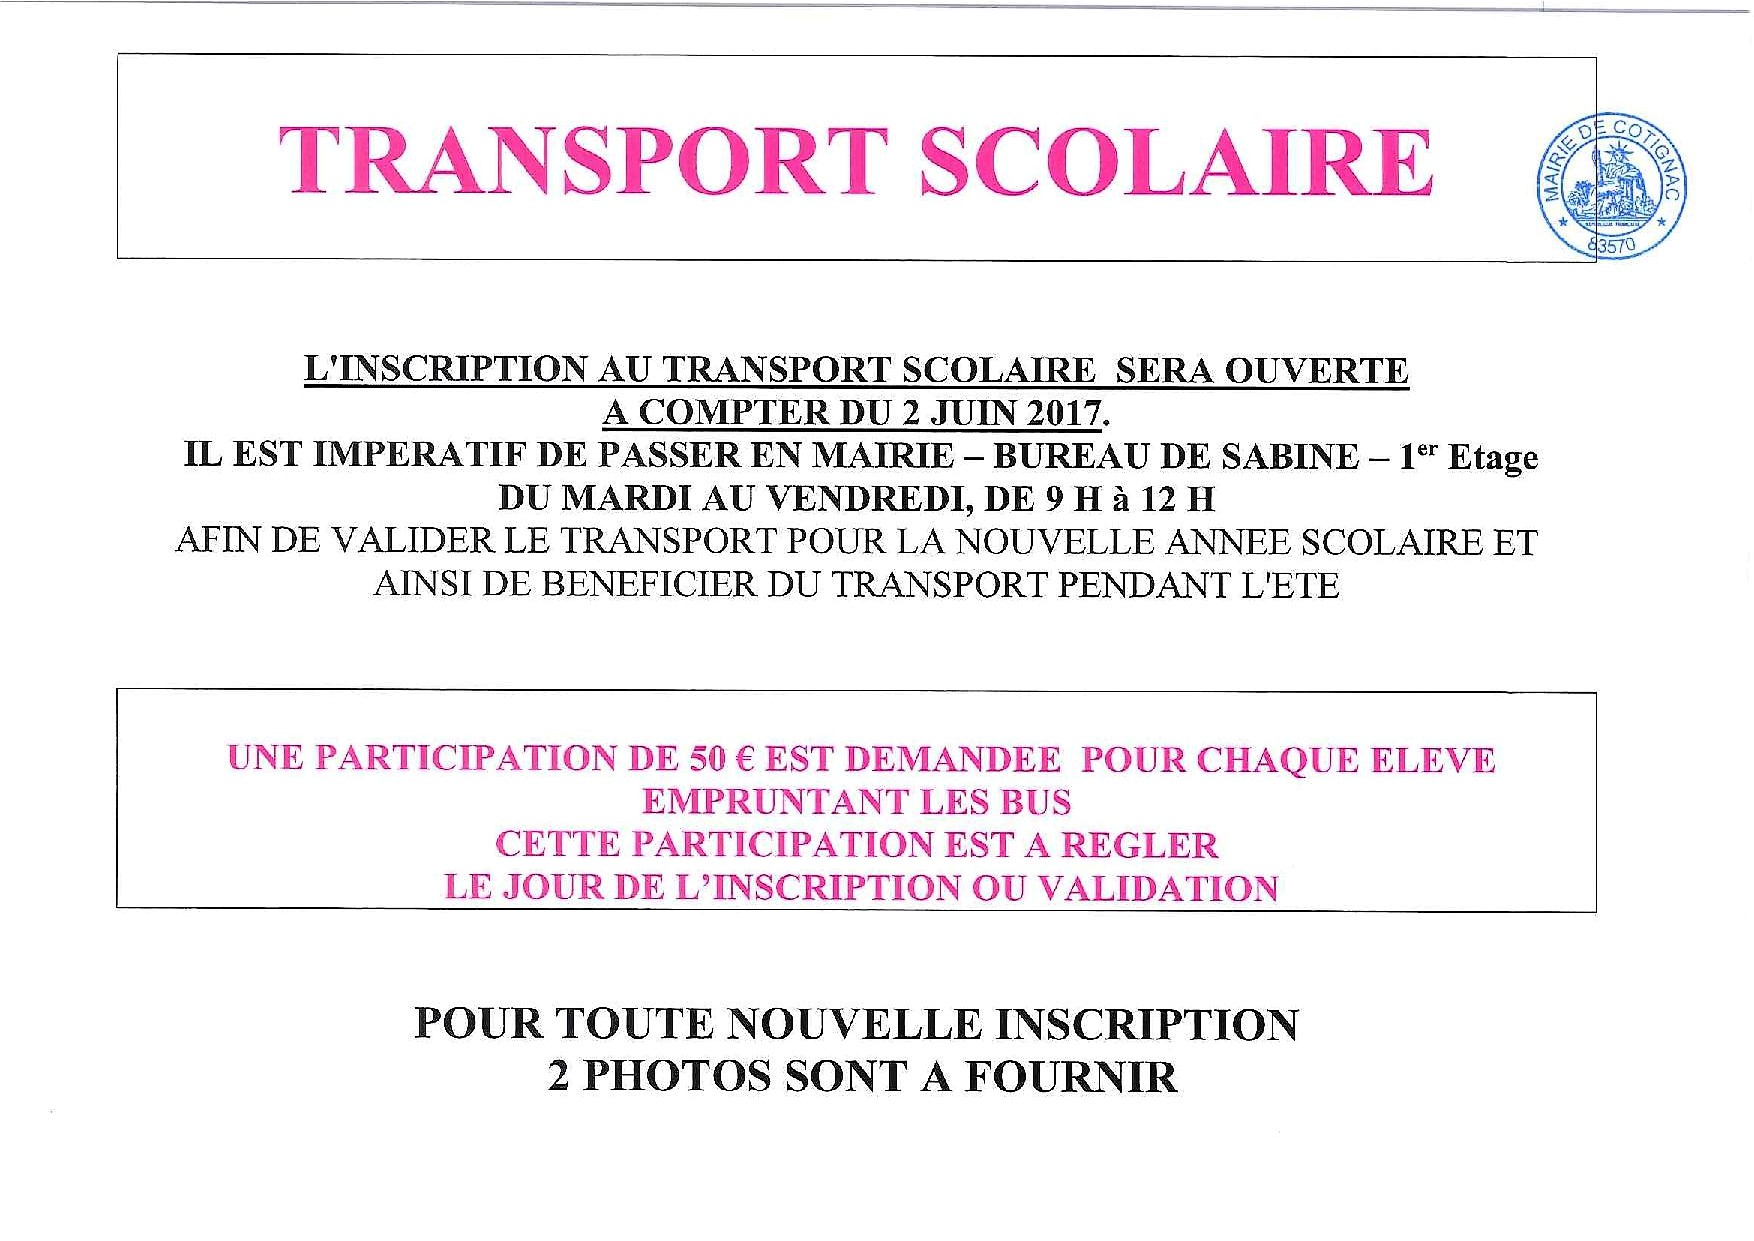 TRANSPORT SCOLAIRE-page-001